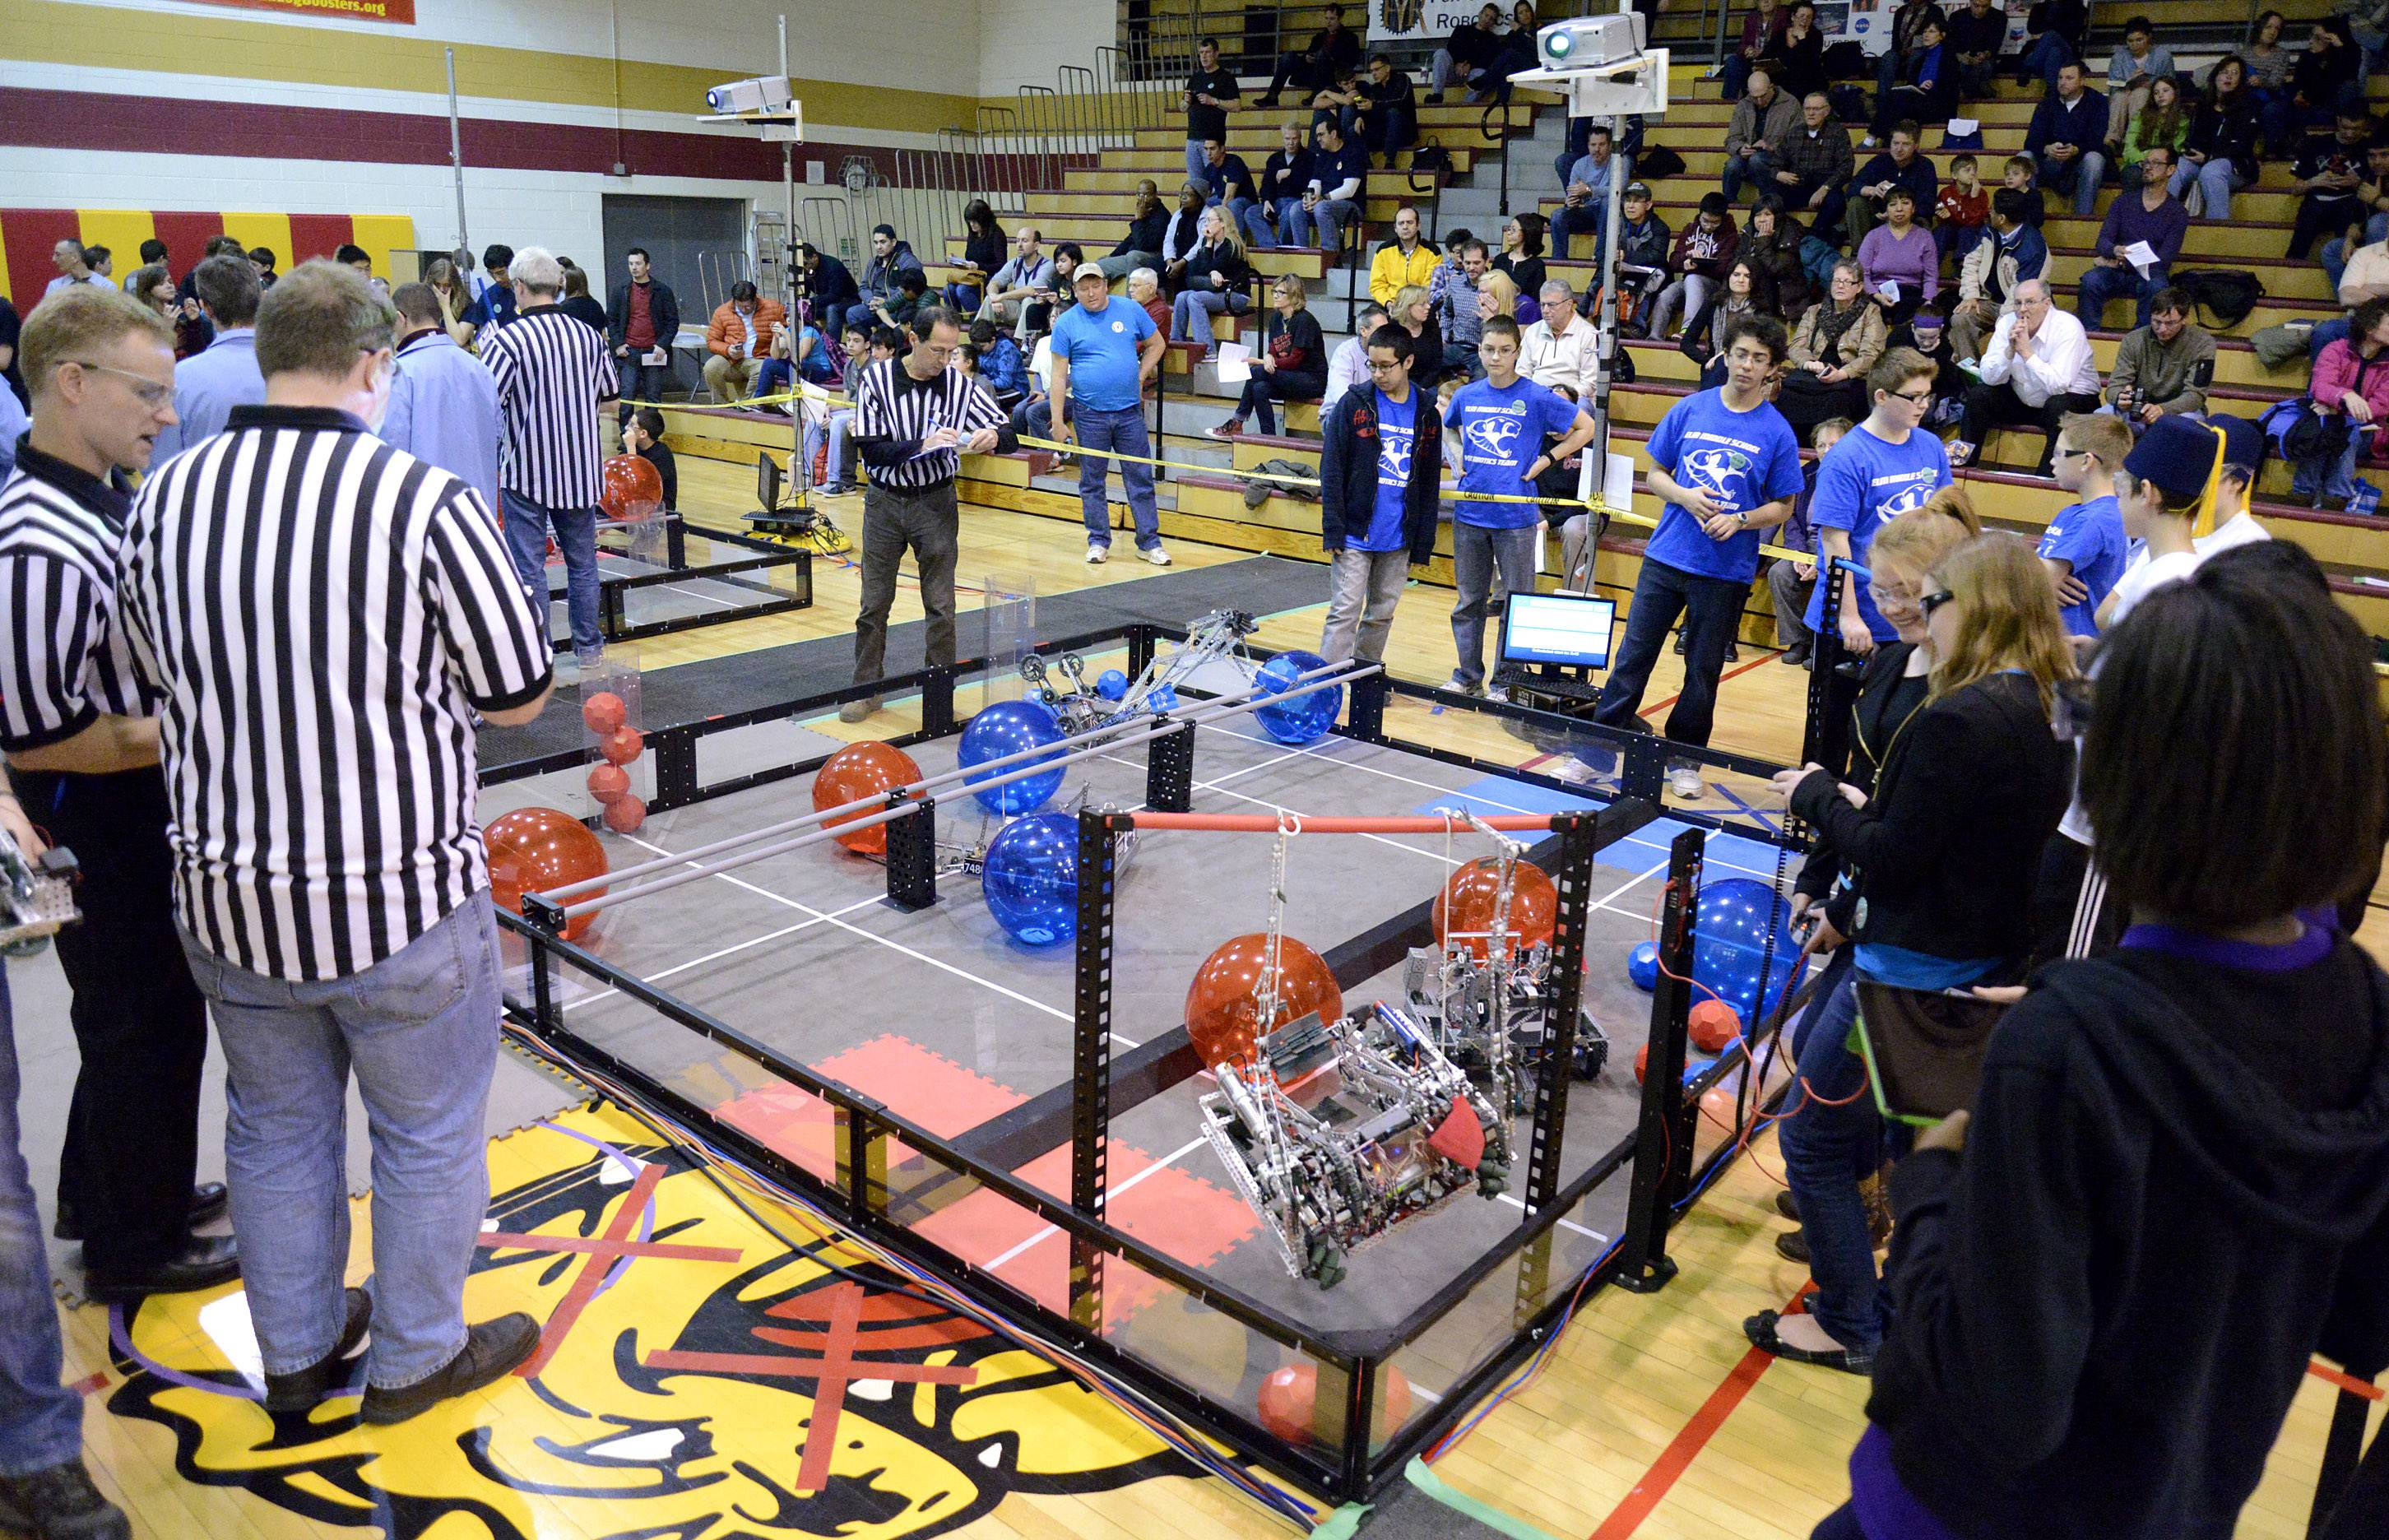 Gabby Garbaccio and Katie Miller, both 14 and from Batavia, wait while judges tally scores after their robot from team Cobalt competed in a first-round match in the Illinois VEX Robotics state championships Saturday at Batavia Middle School. They are on the right, wearing safety glasses.